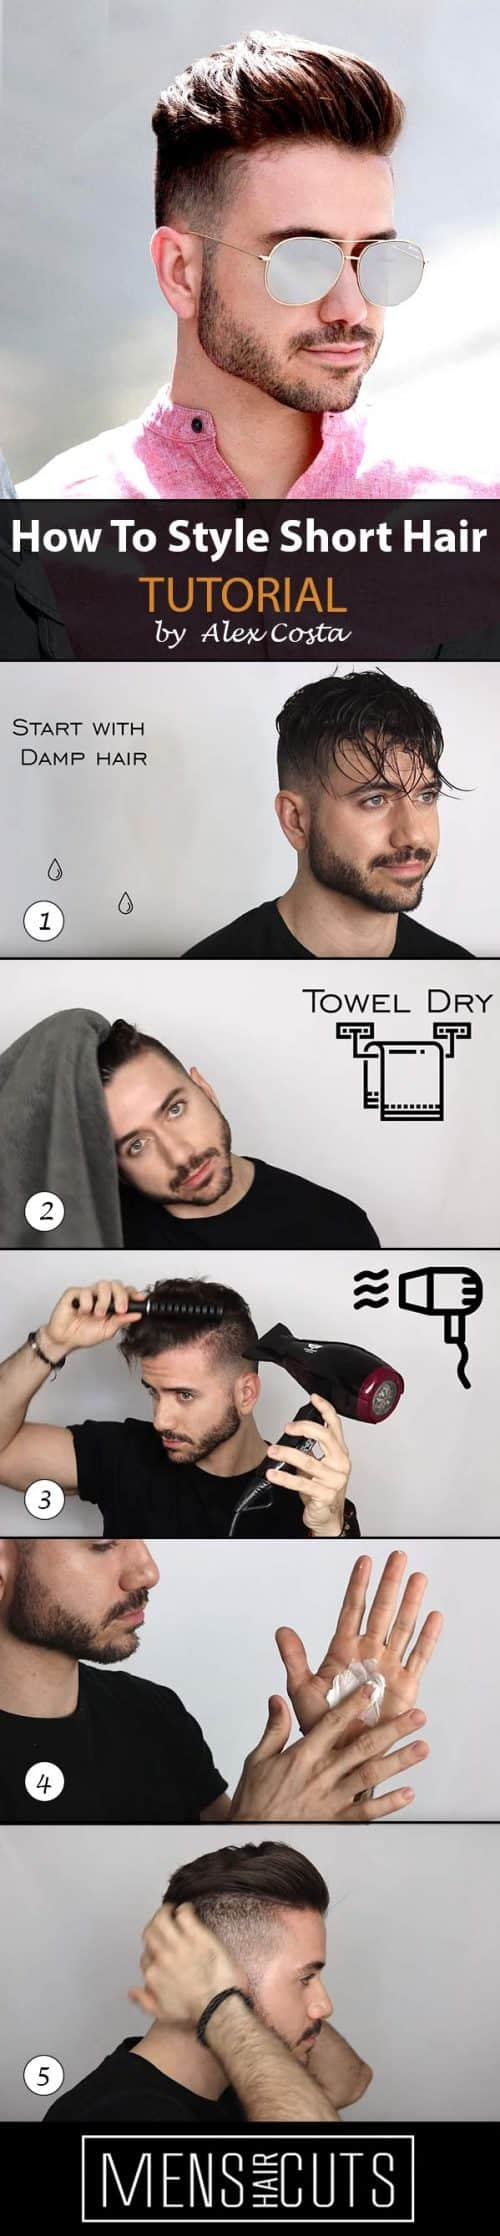 How To Style The Pompadour #pompadour #tutorial #shorthair #howtostyleshorthair